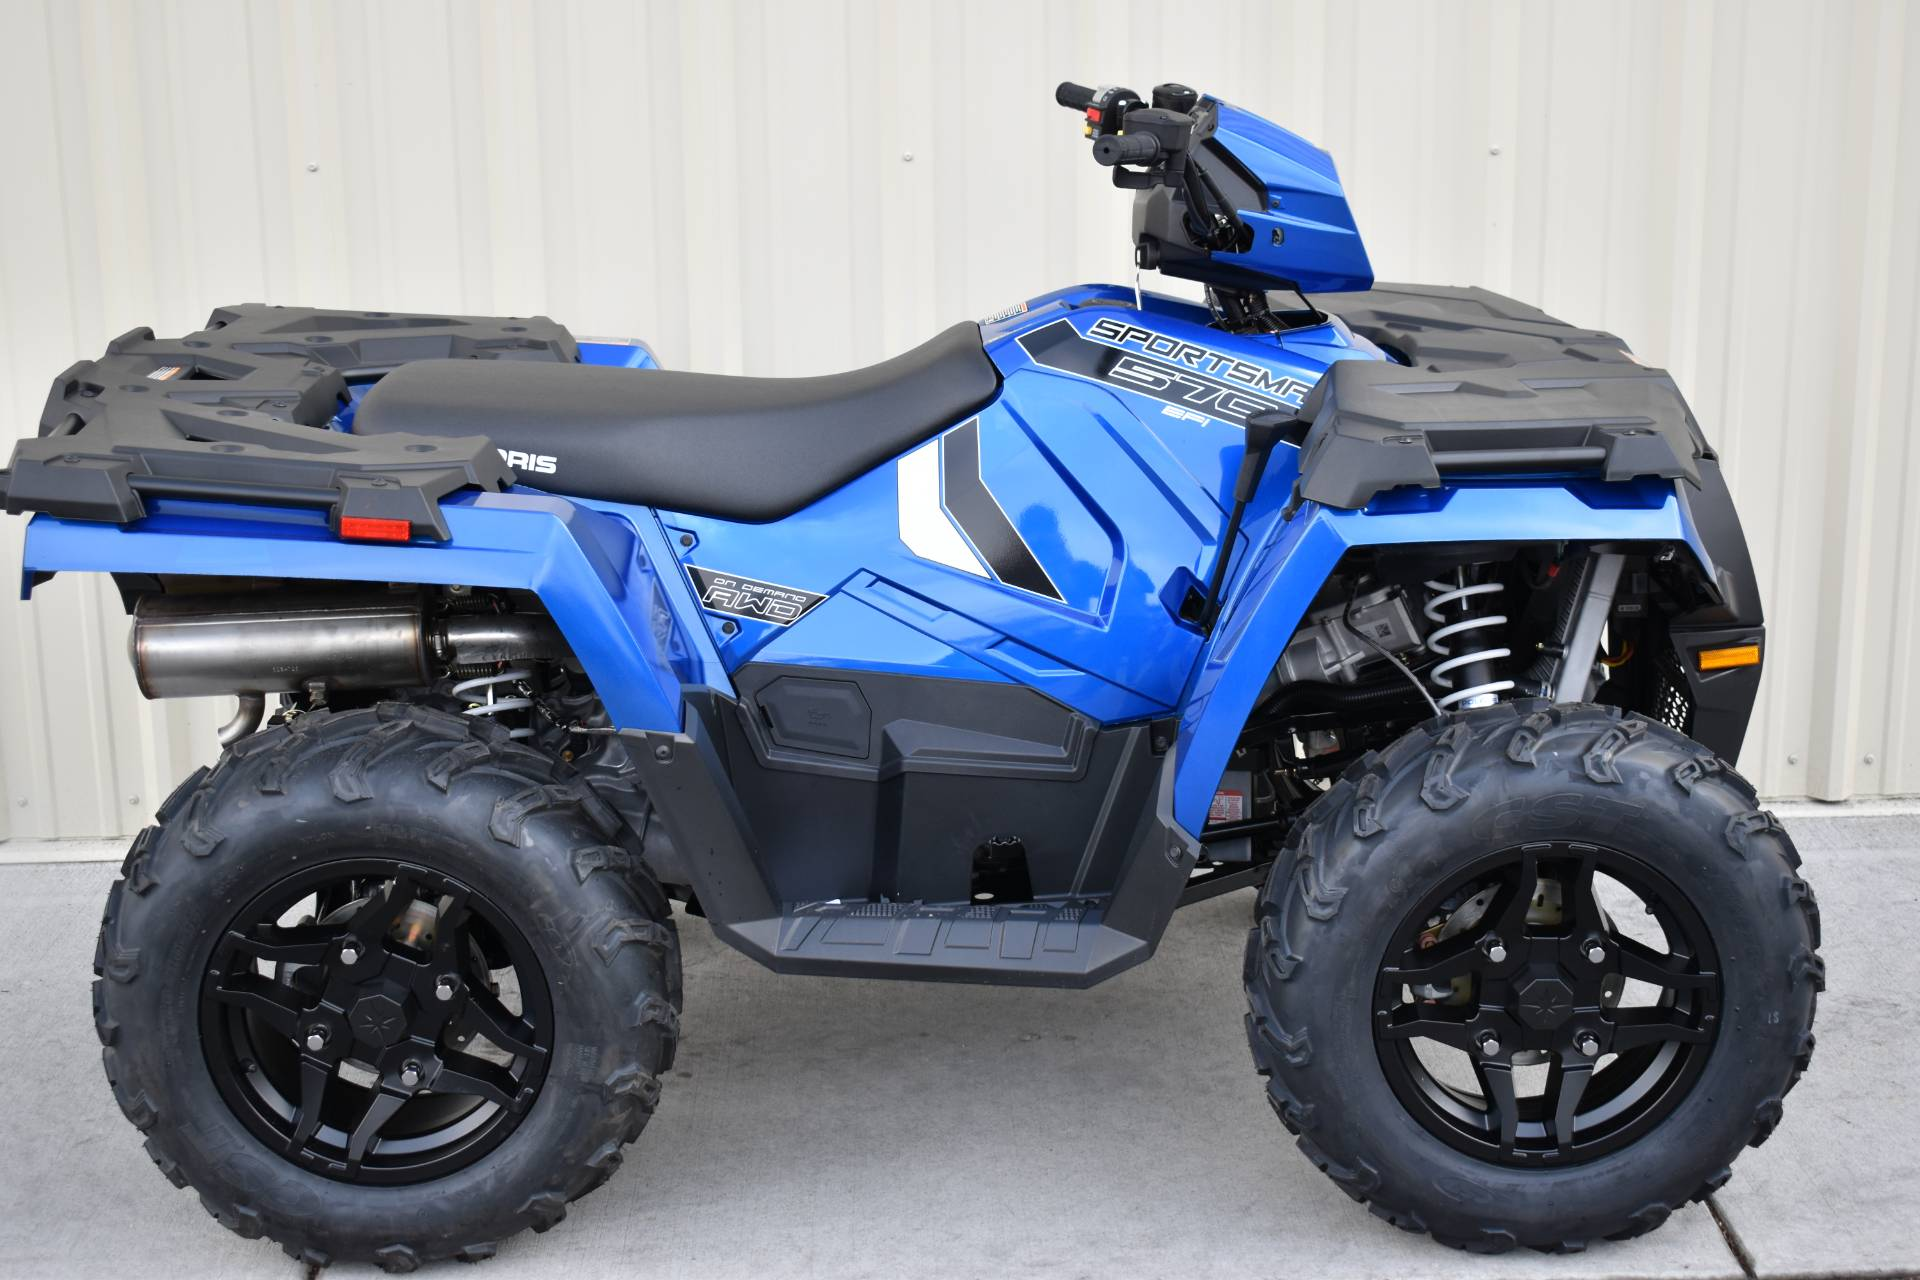 2020 Polaris Sportsman 570 Premium in Boise, Idaho - Photo 1